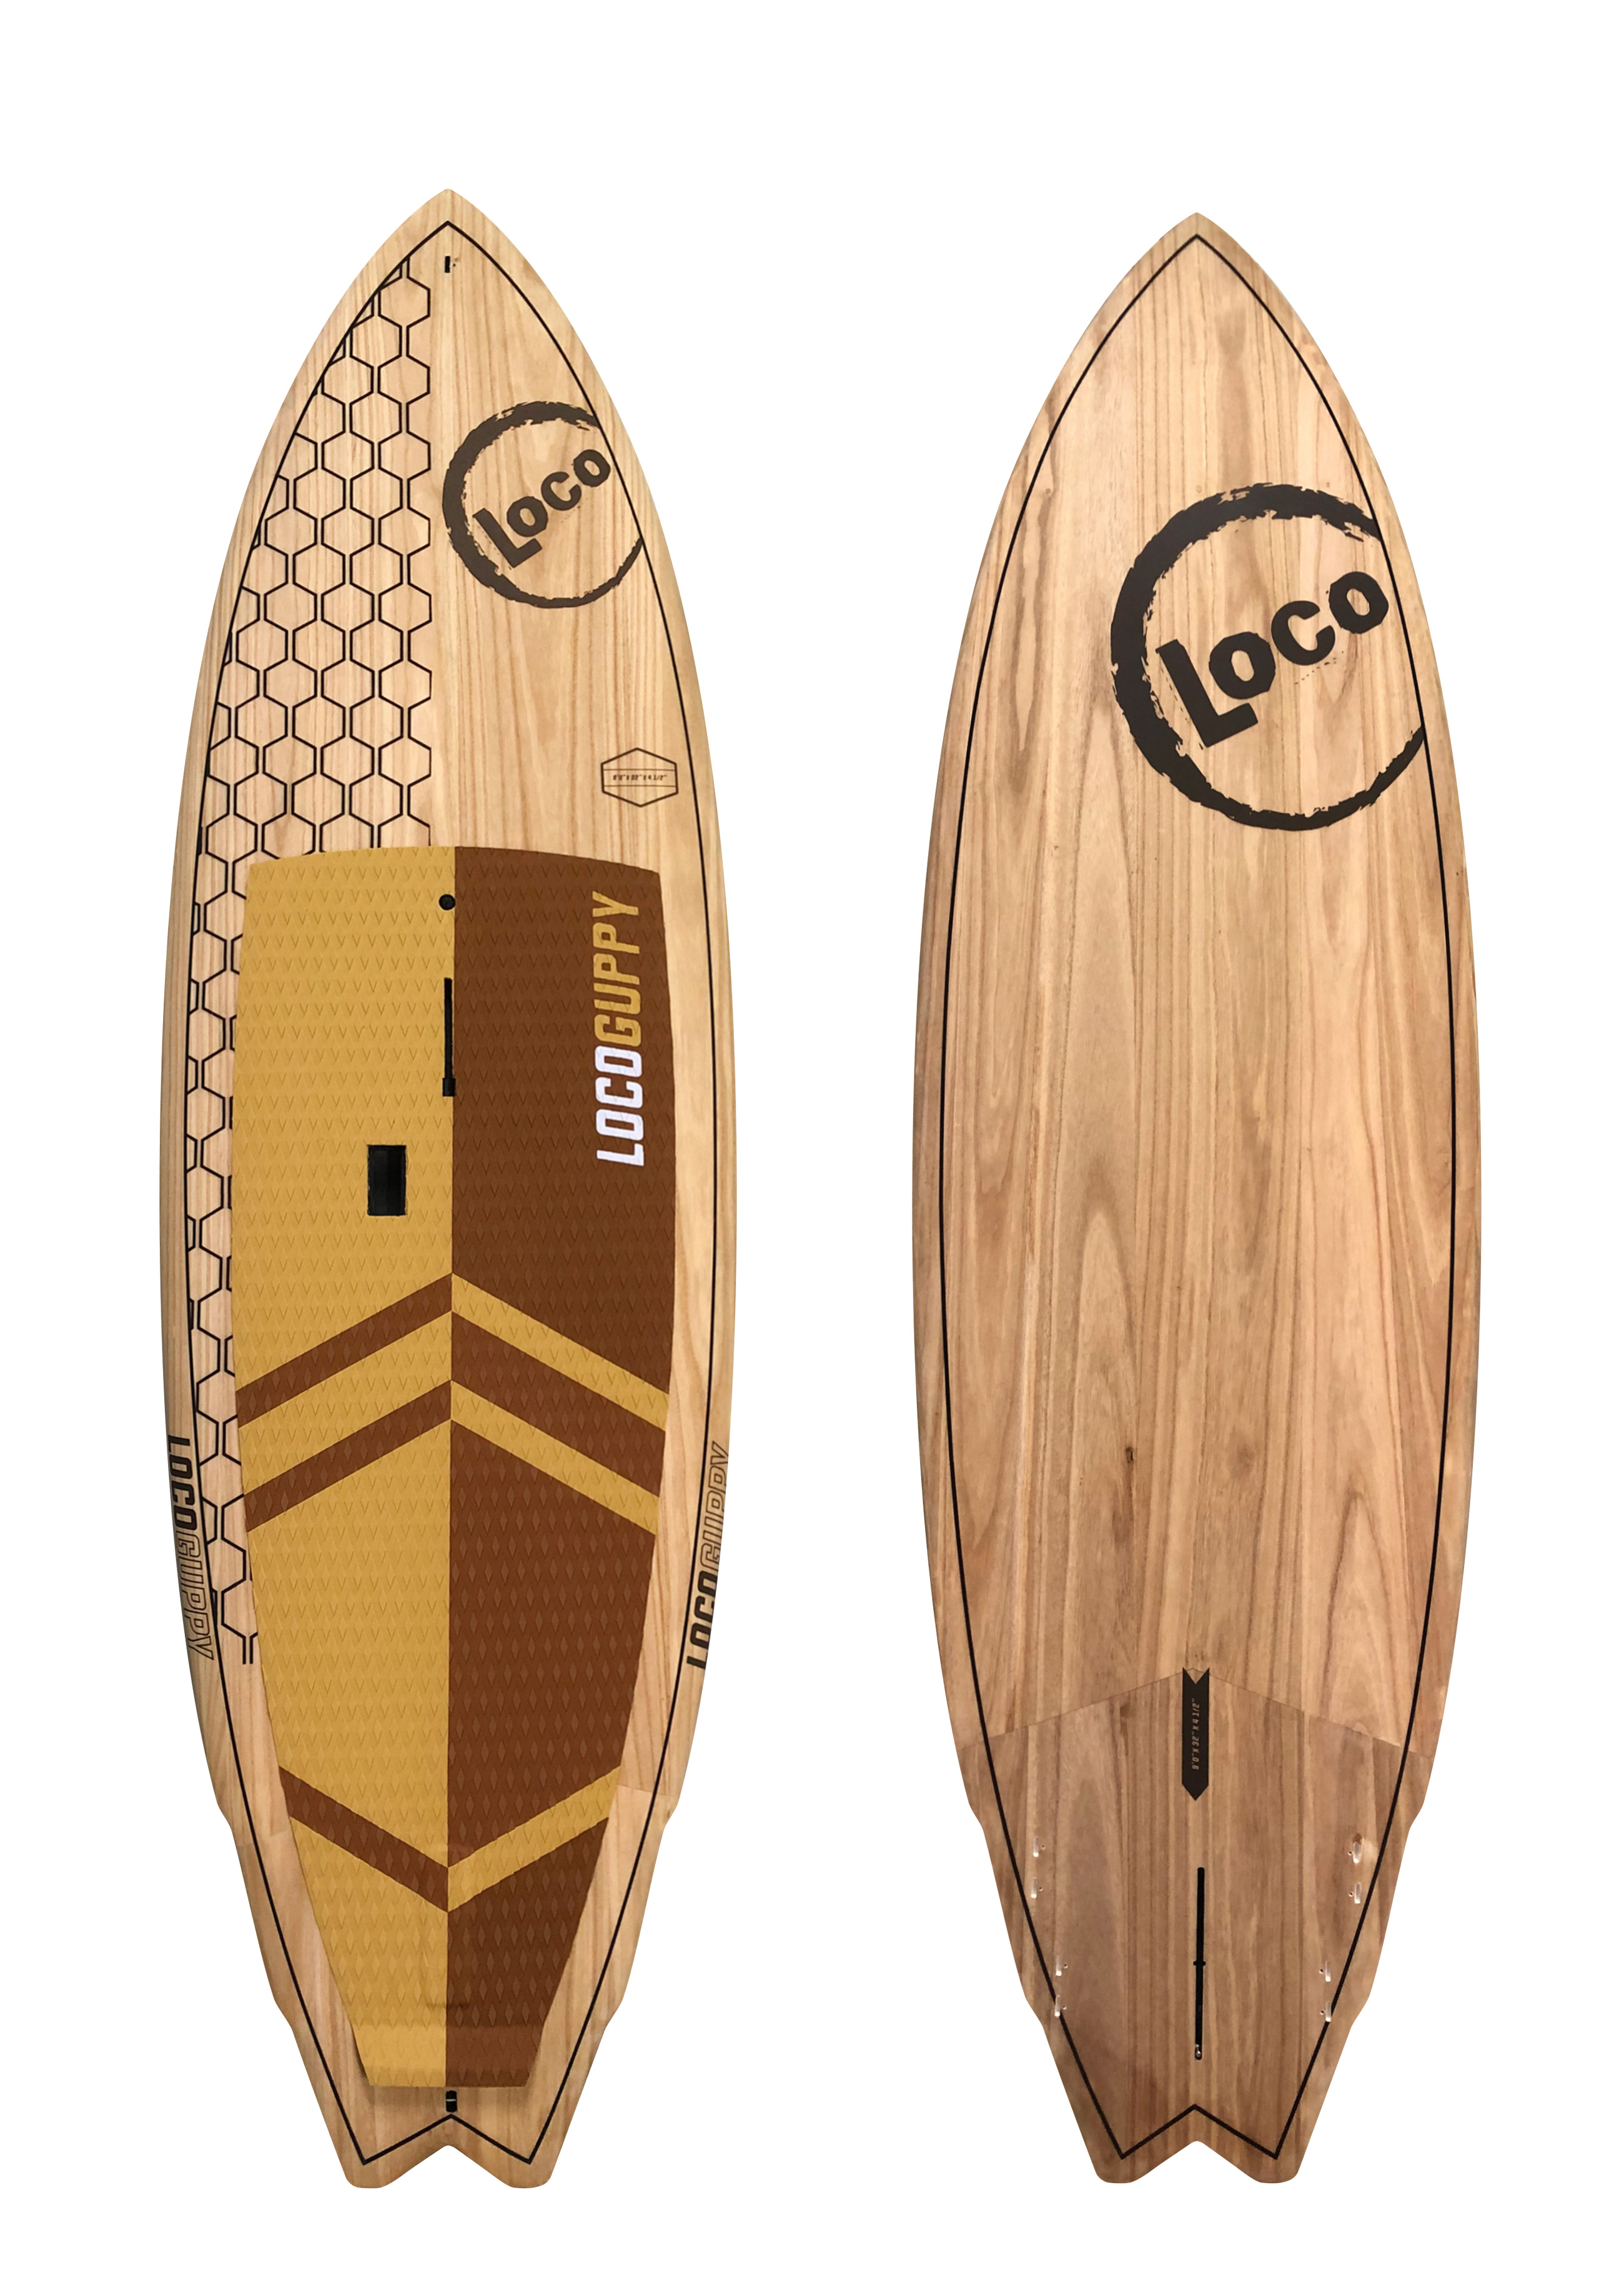 2020-Loco-Guppy-SUP-in-Wood